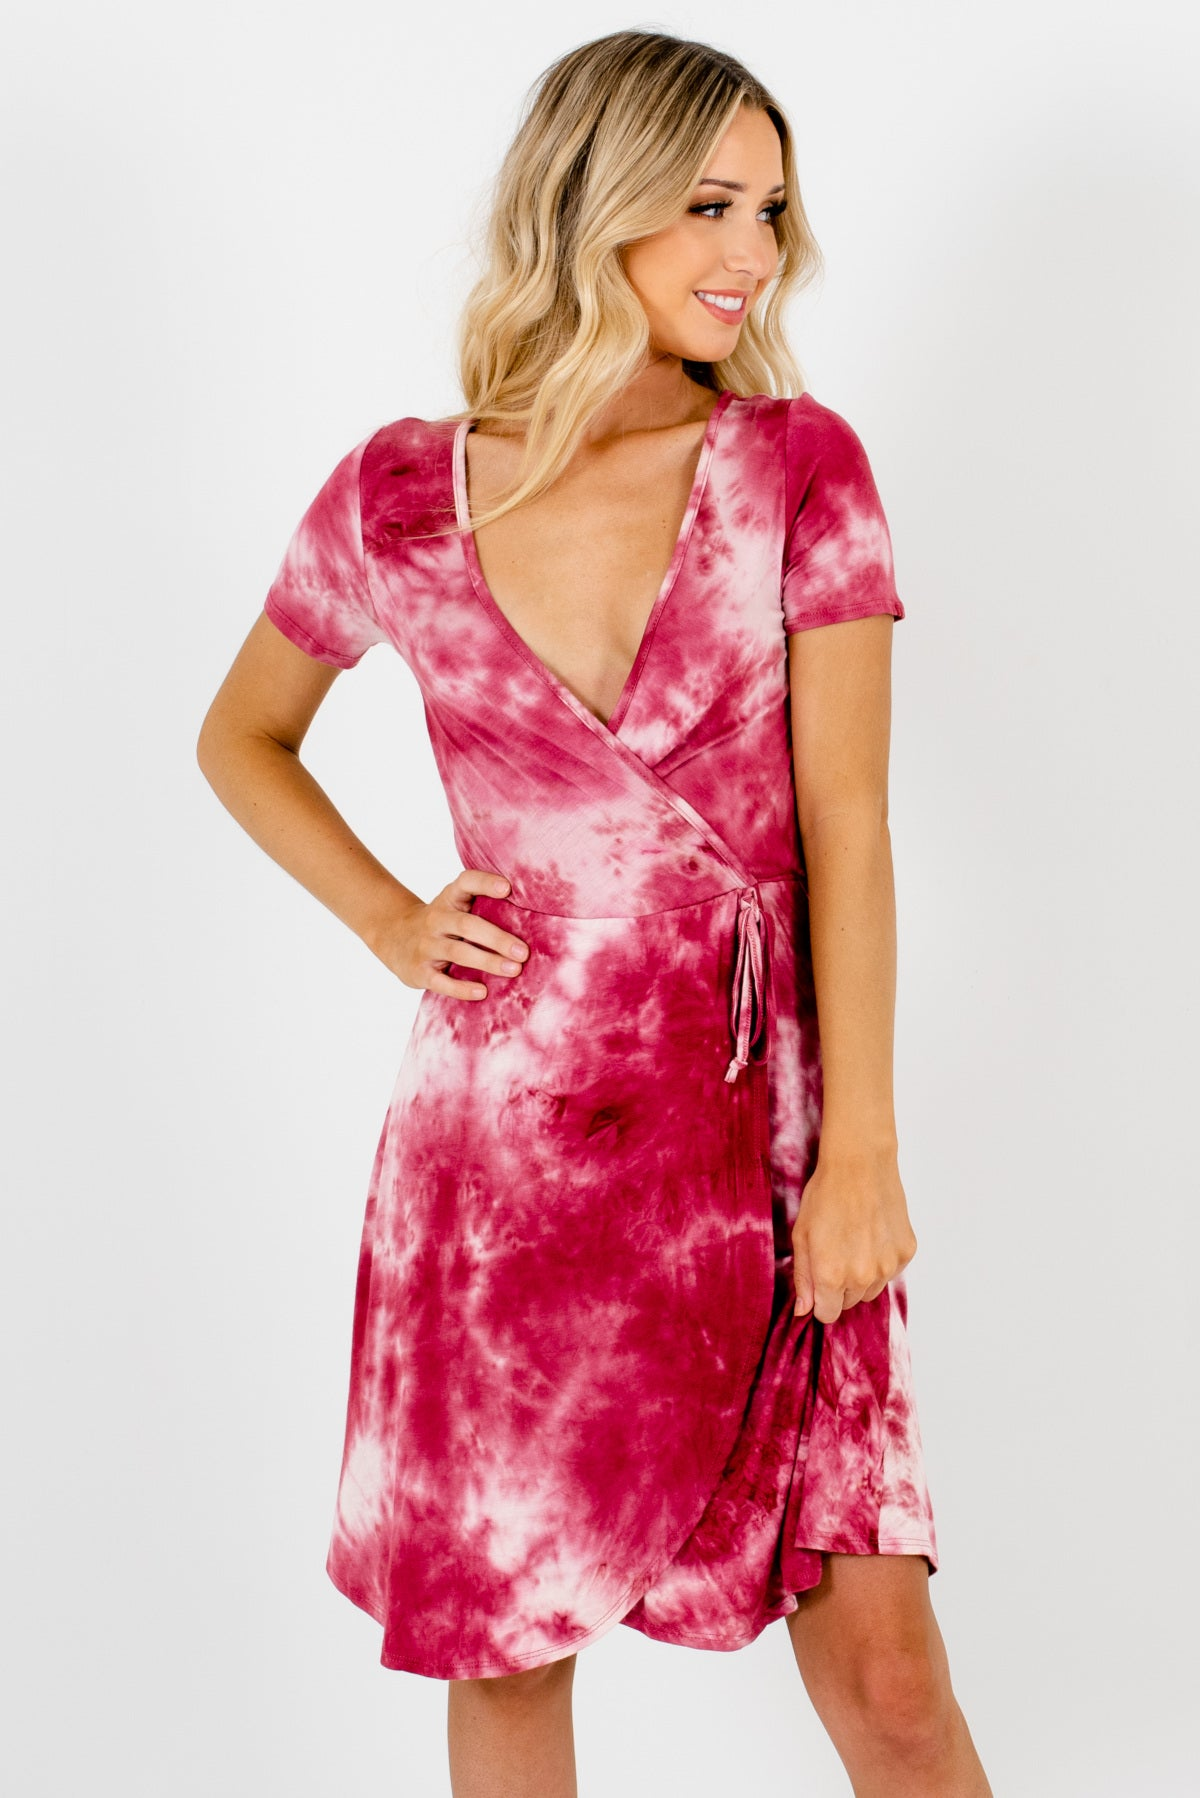 Light and Dark Pink Tie-Dye Boutique Dresses for Women